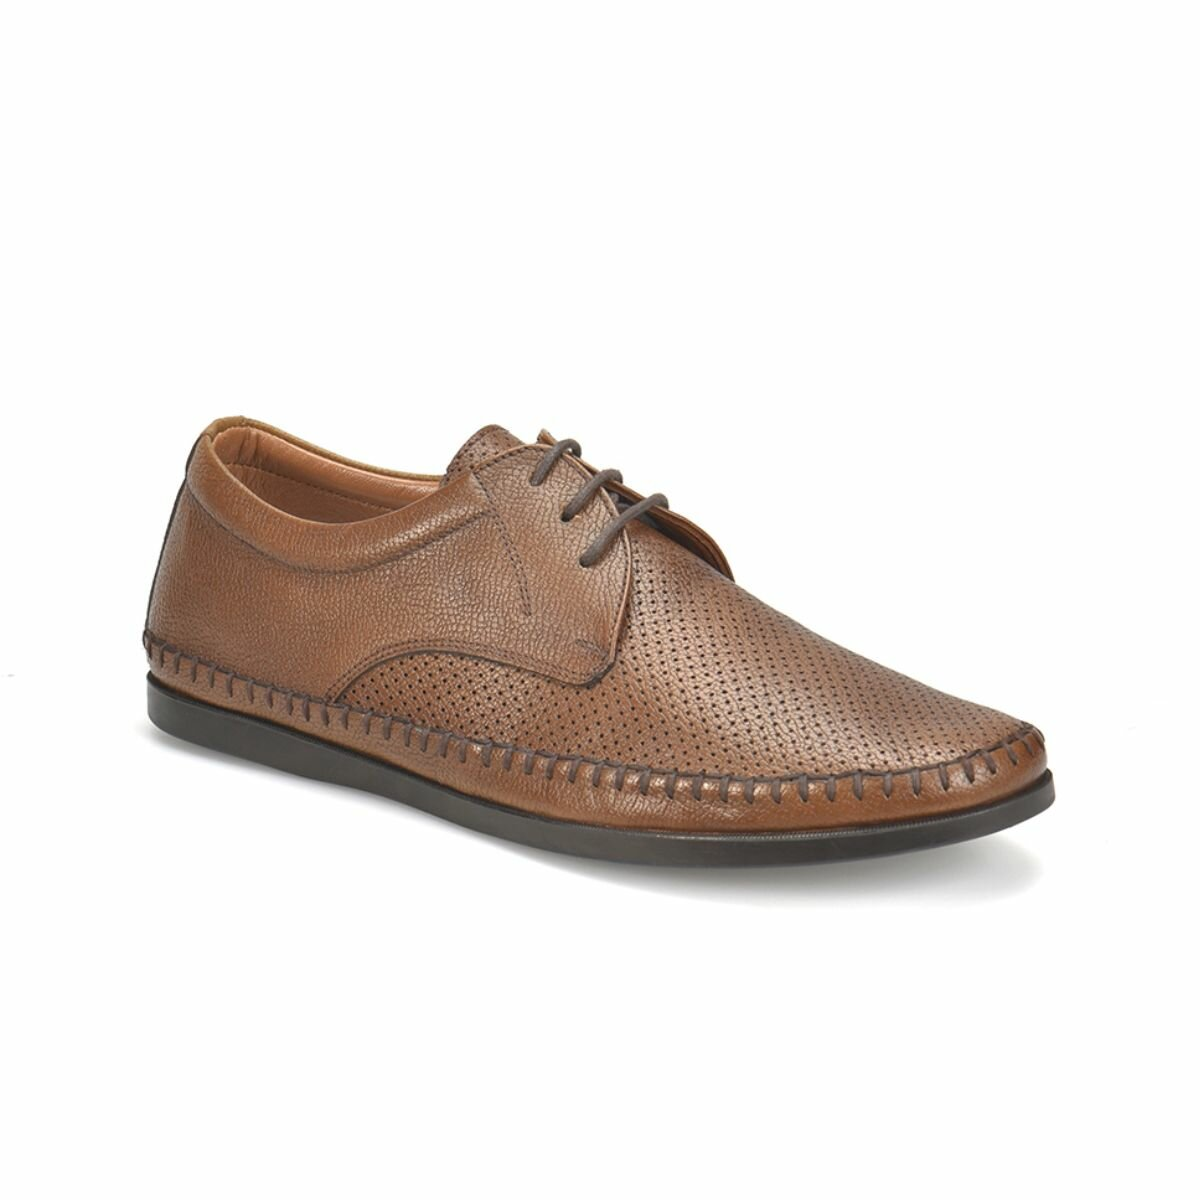 FLO 3044 M 1366 Tan Men 'S Classic Shoes Flogart